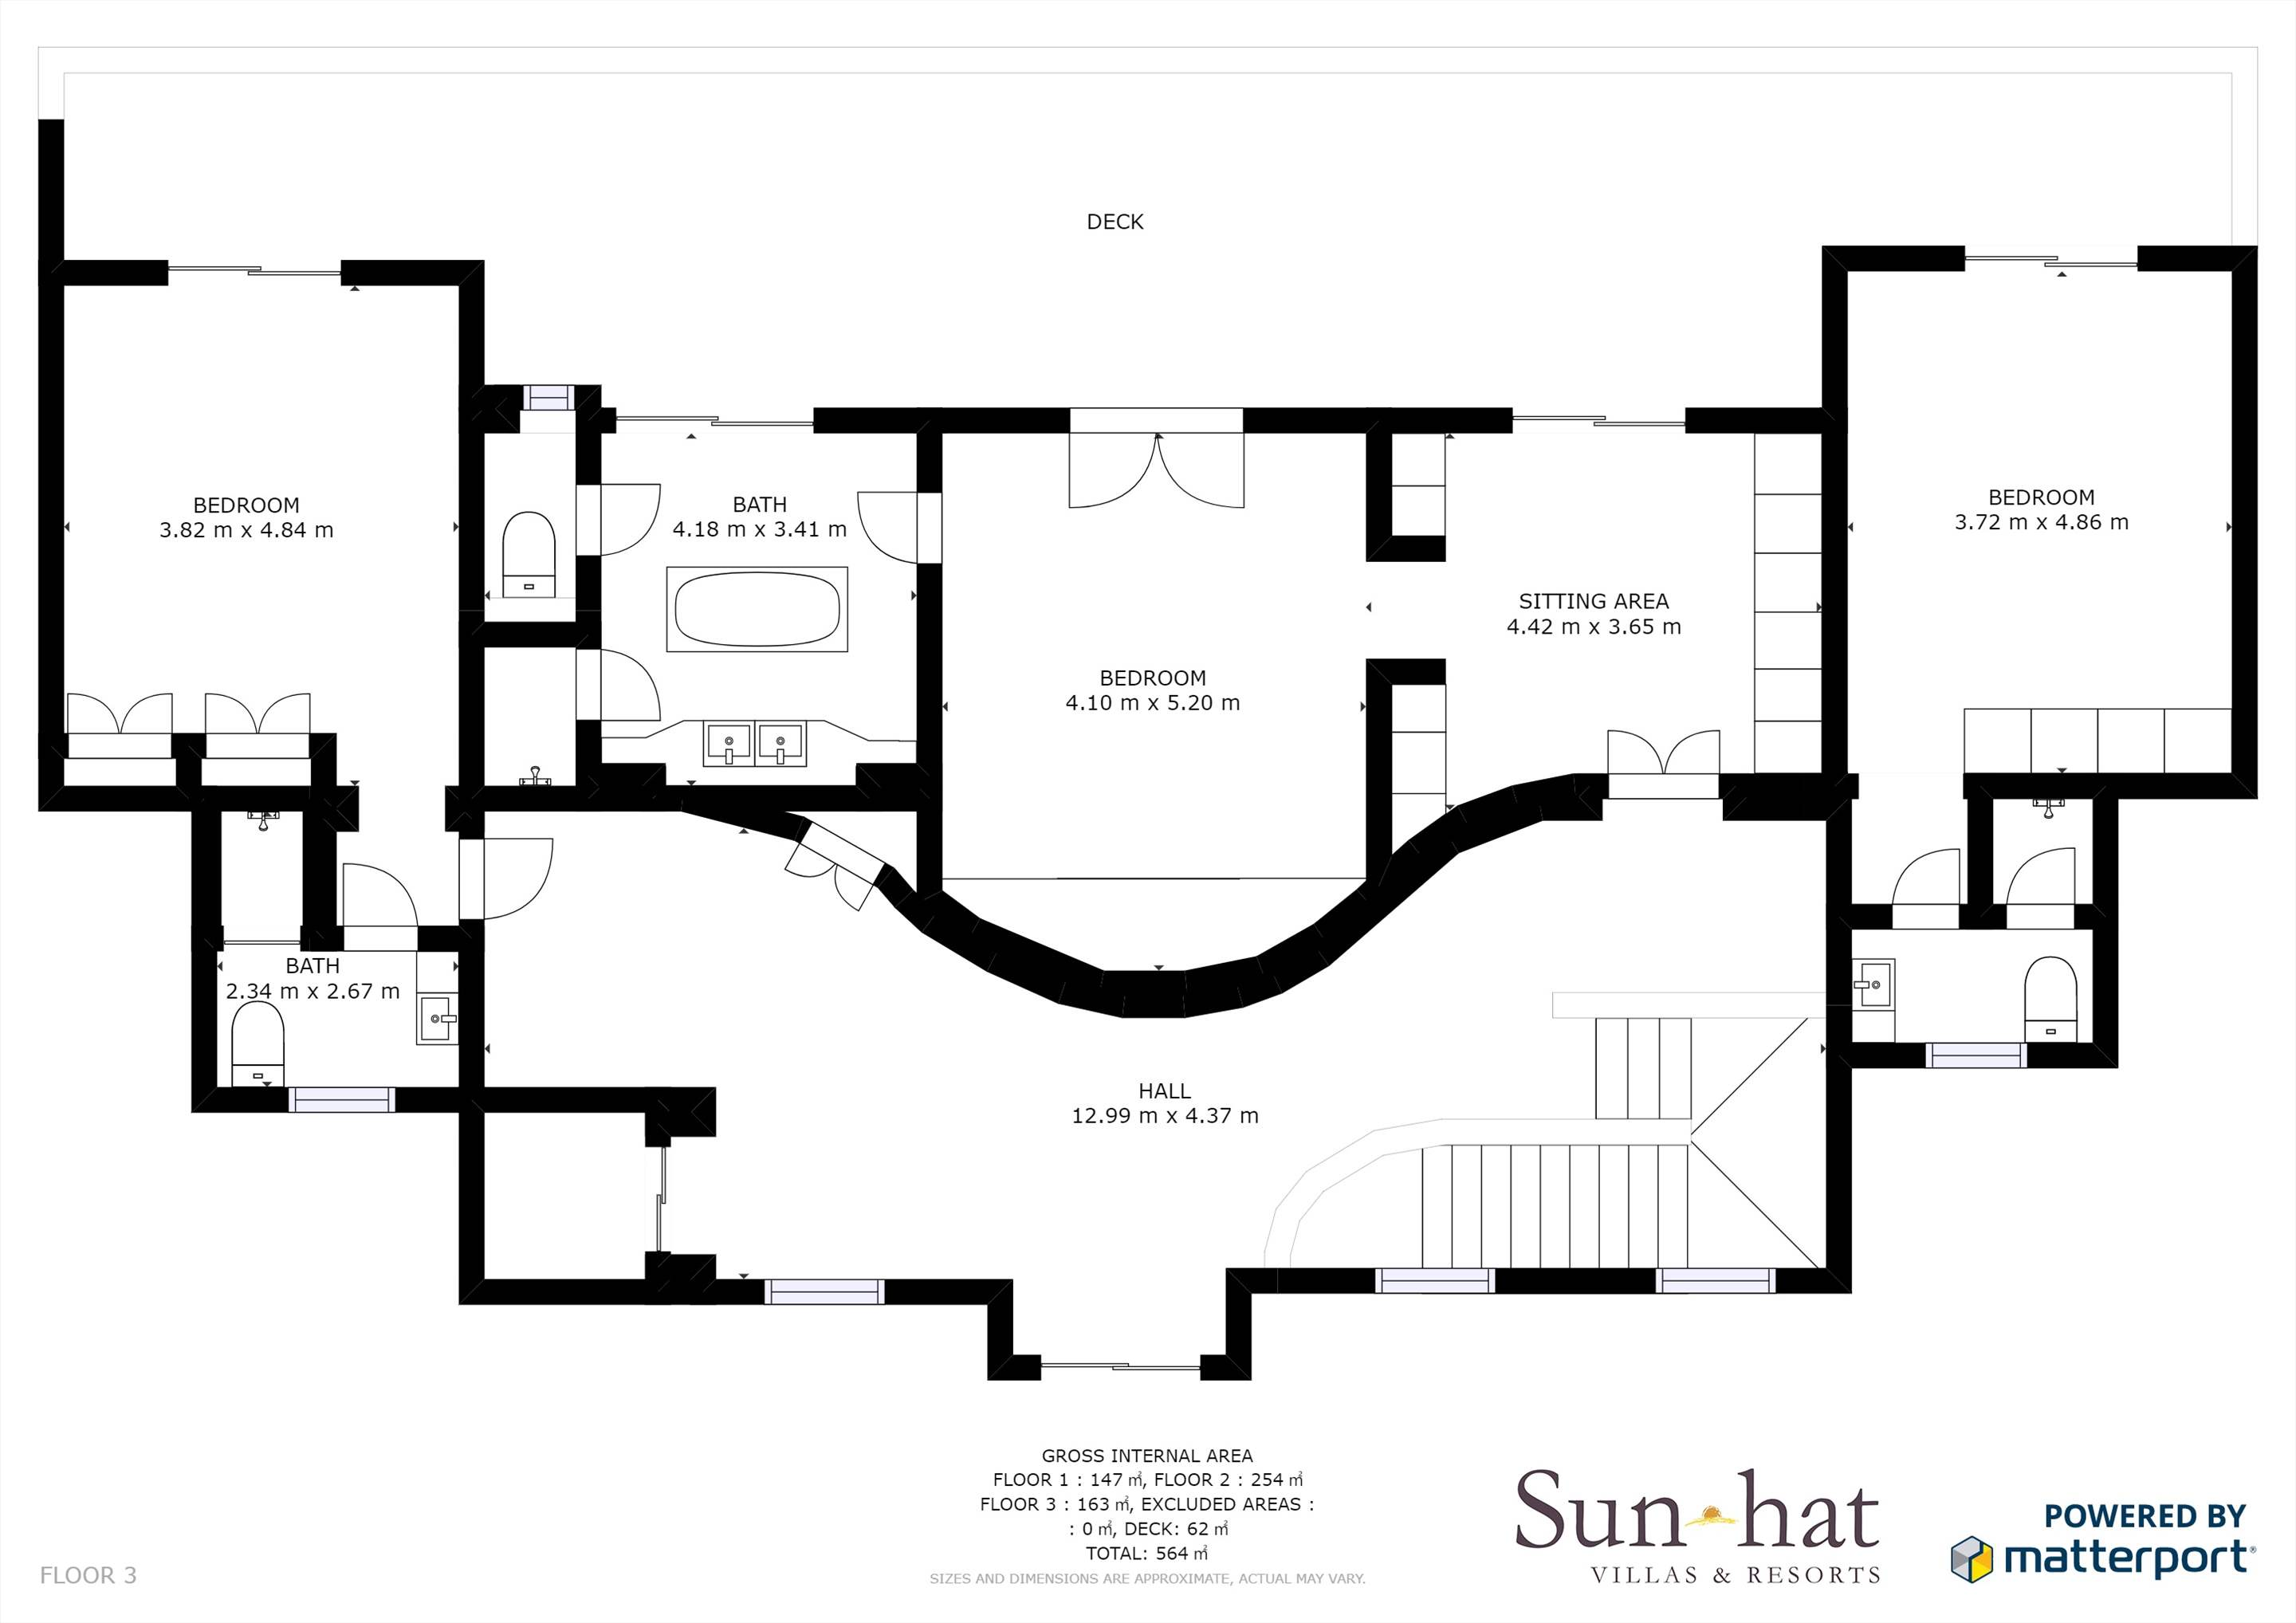 Villa Lantana 2, Main house & Annexe, 6 bedrooms Floorplan #3